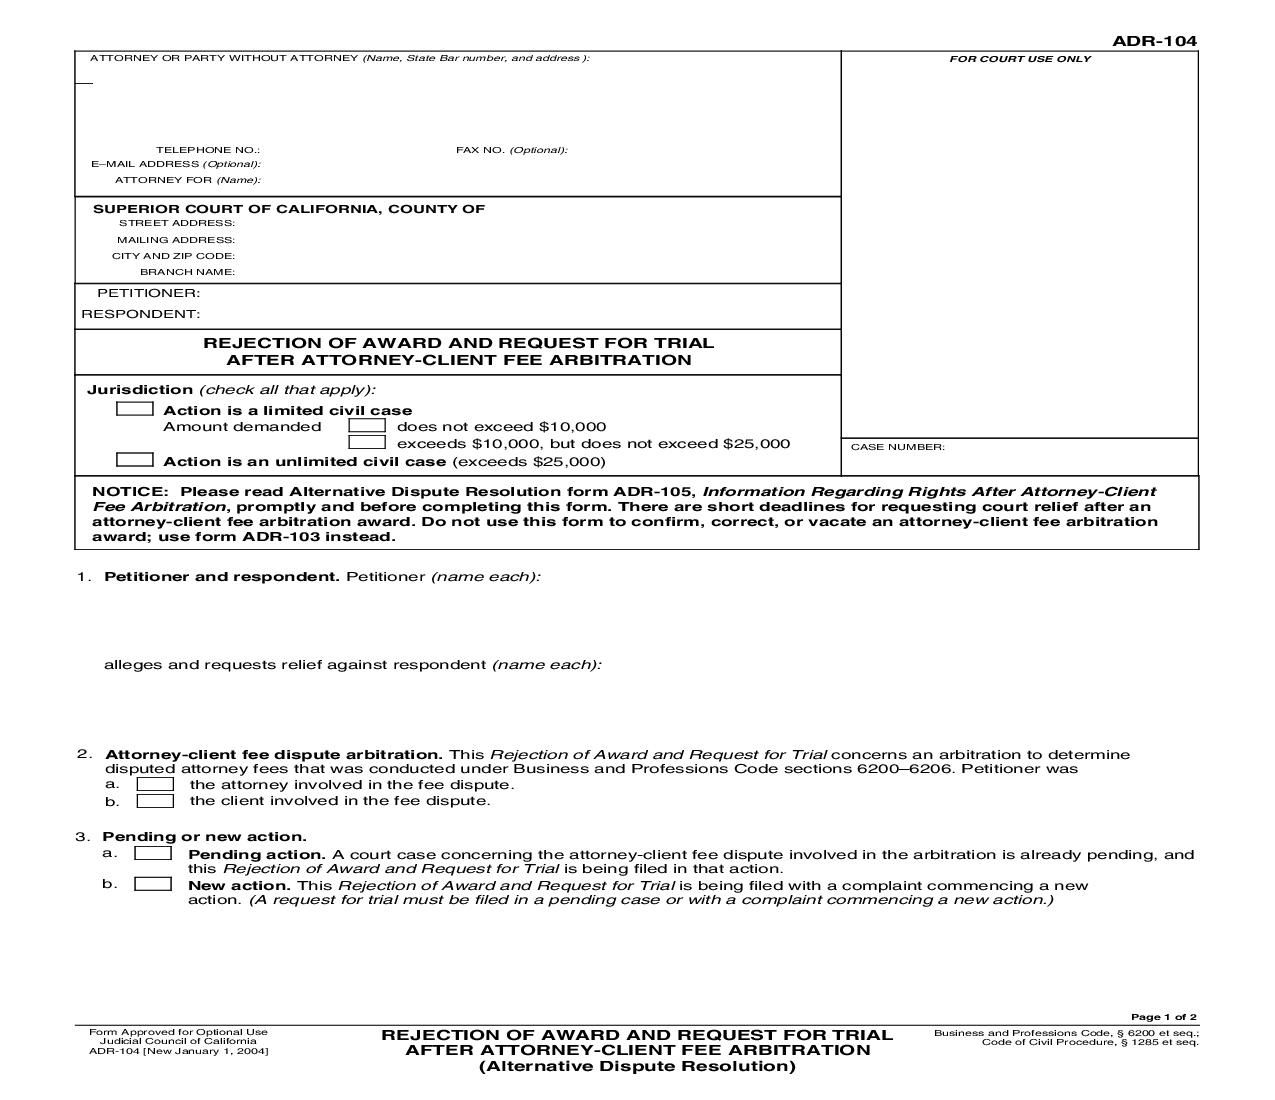 This is a California form that can be used for Alternative